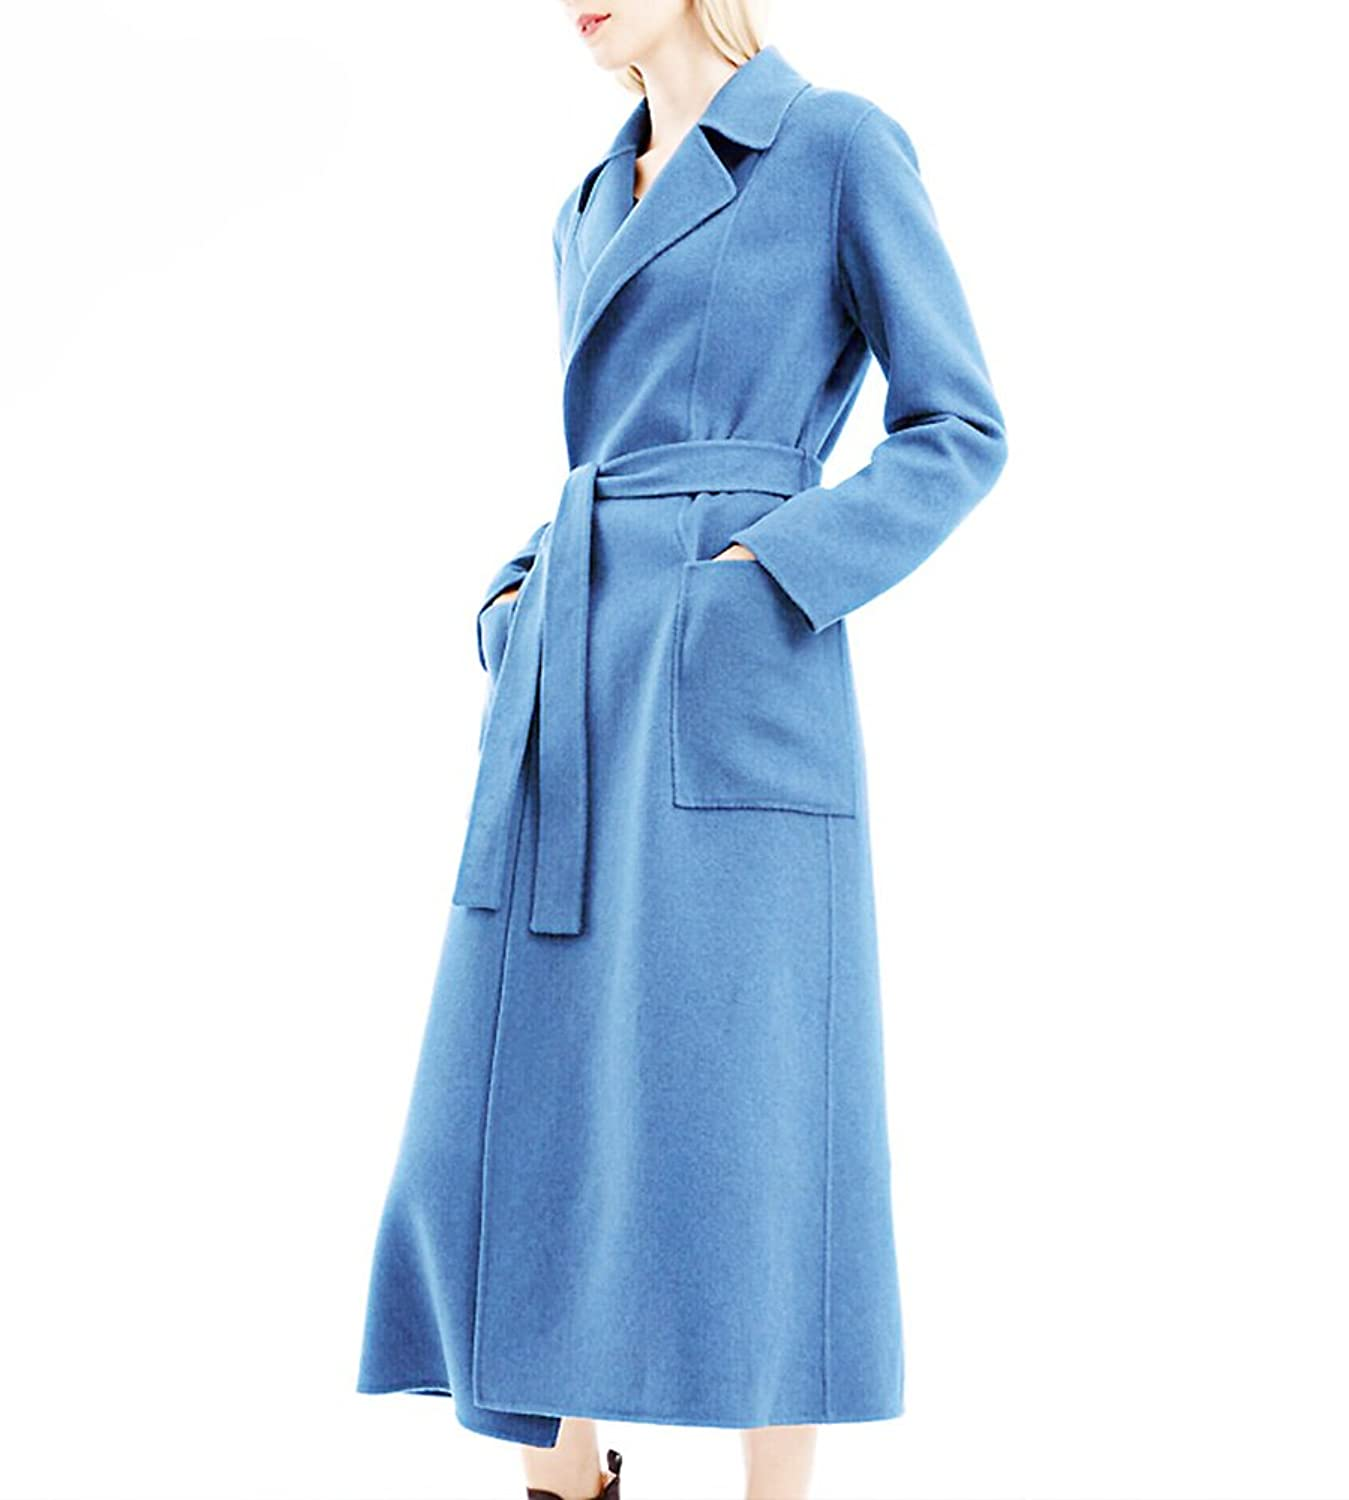 Hego Women's 2016 Winter Turn-down Collar Blue Long Wool Coat H2977